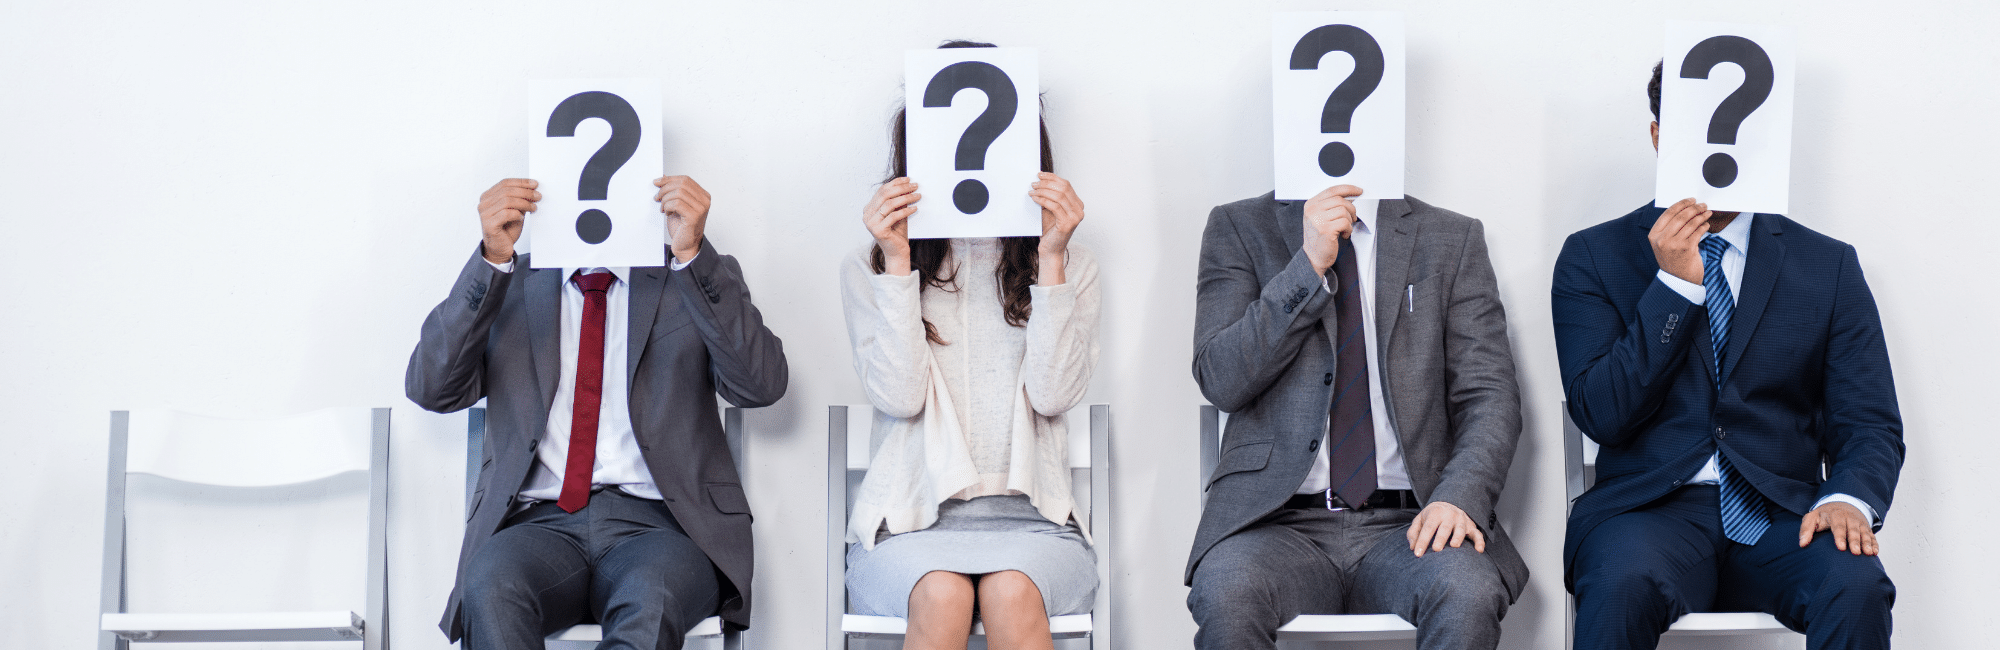 When and Why to Hire an Executive Search Firm Banner